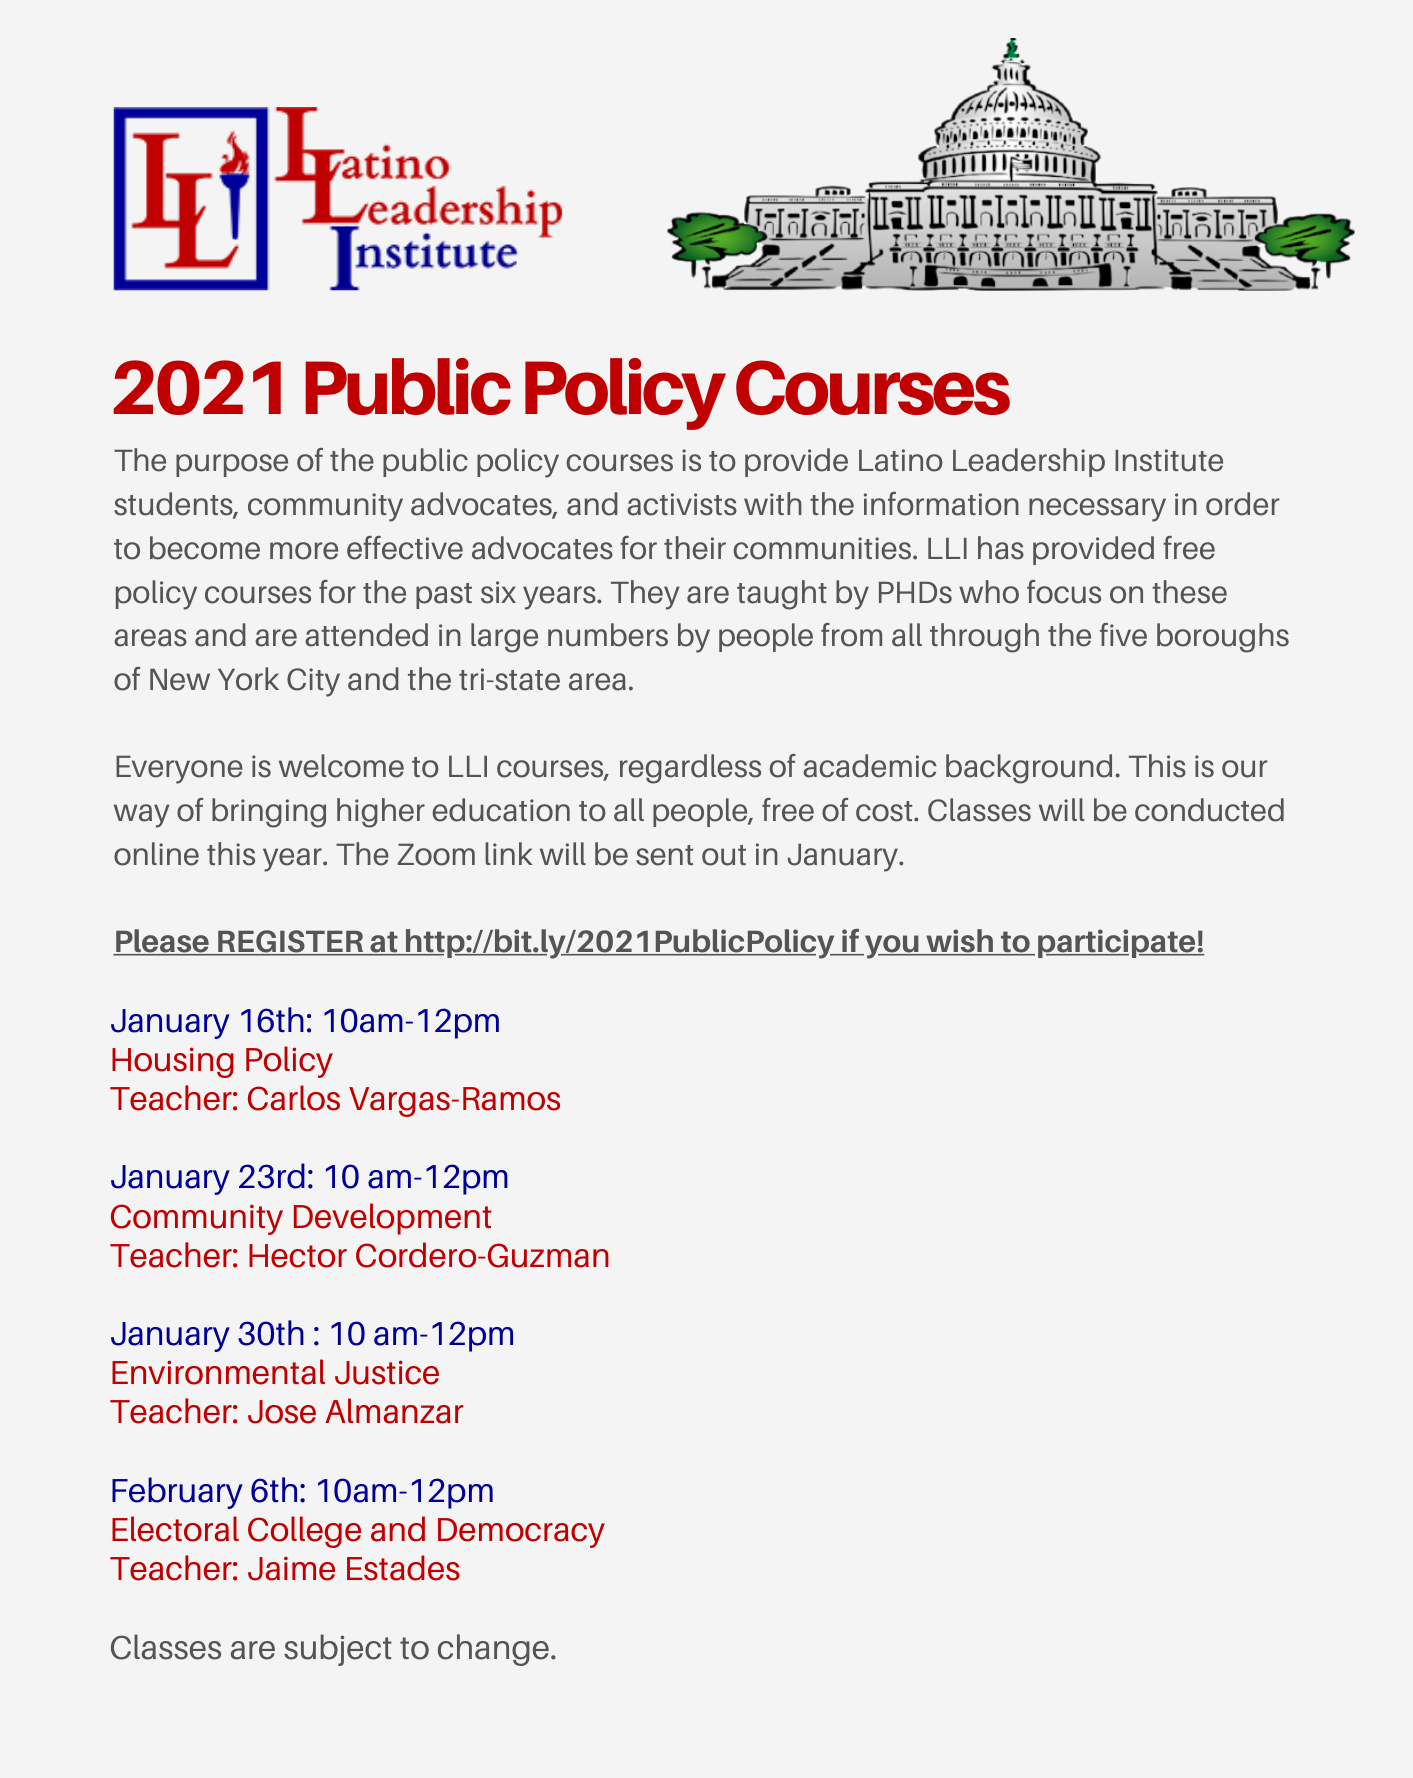 Public Policy Courses Week 4